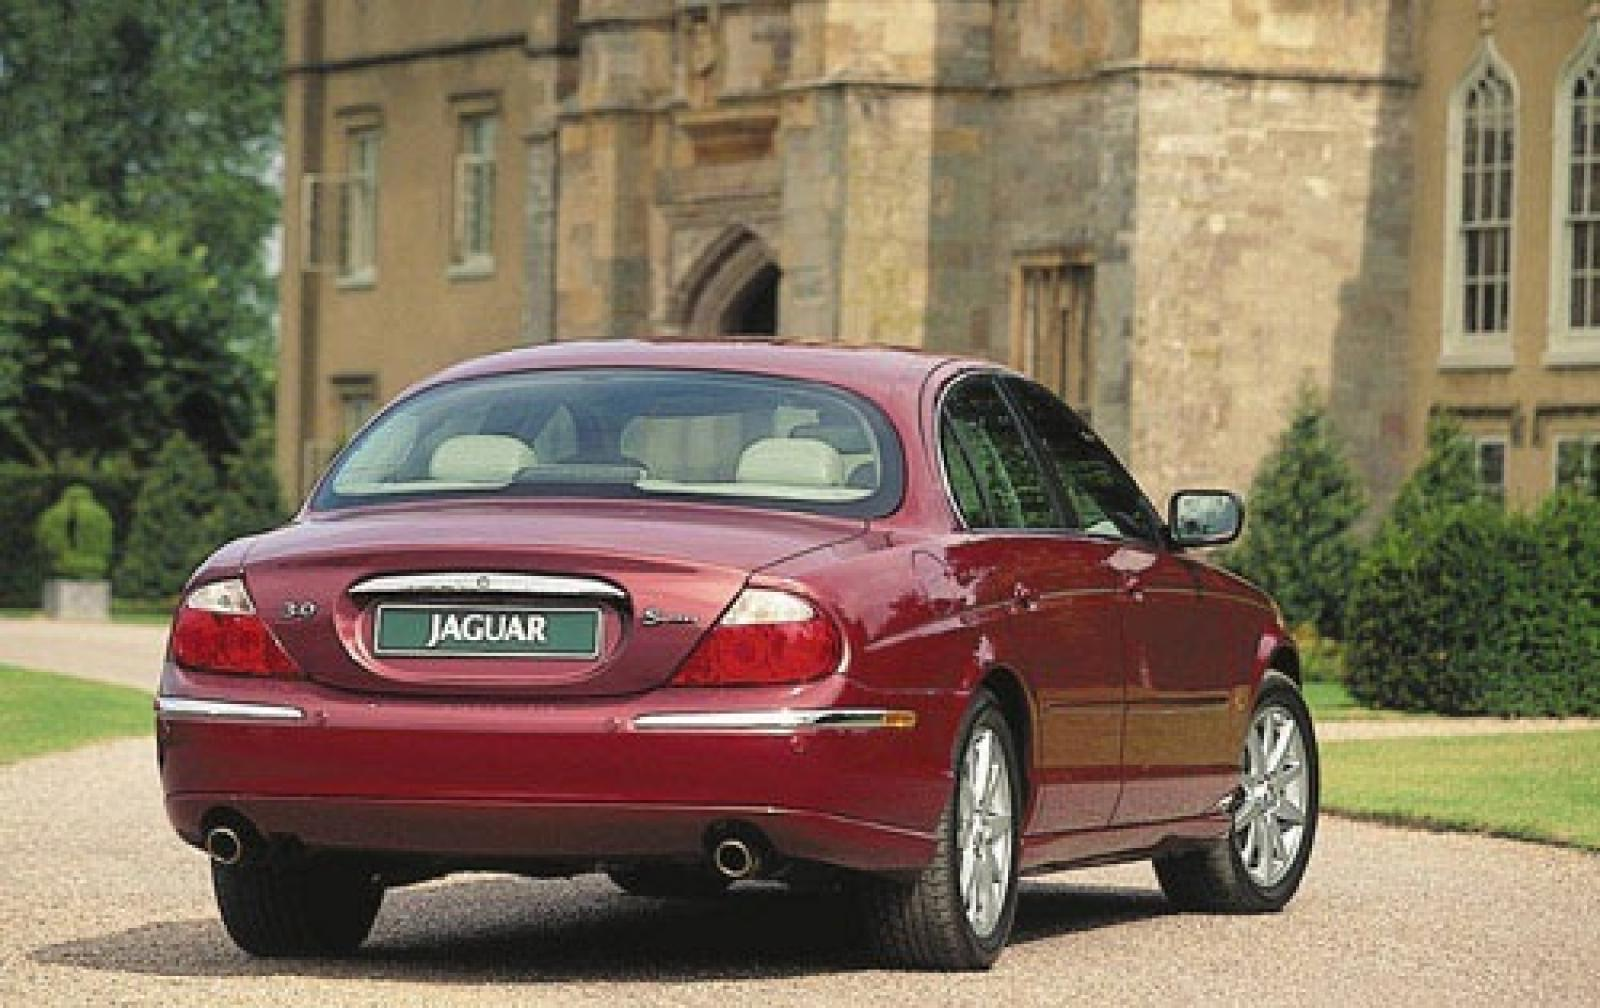 2002 jaguar s type information and photos zombiedrive. Black Bedroom Furniture Sets. Home Design Ideas